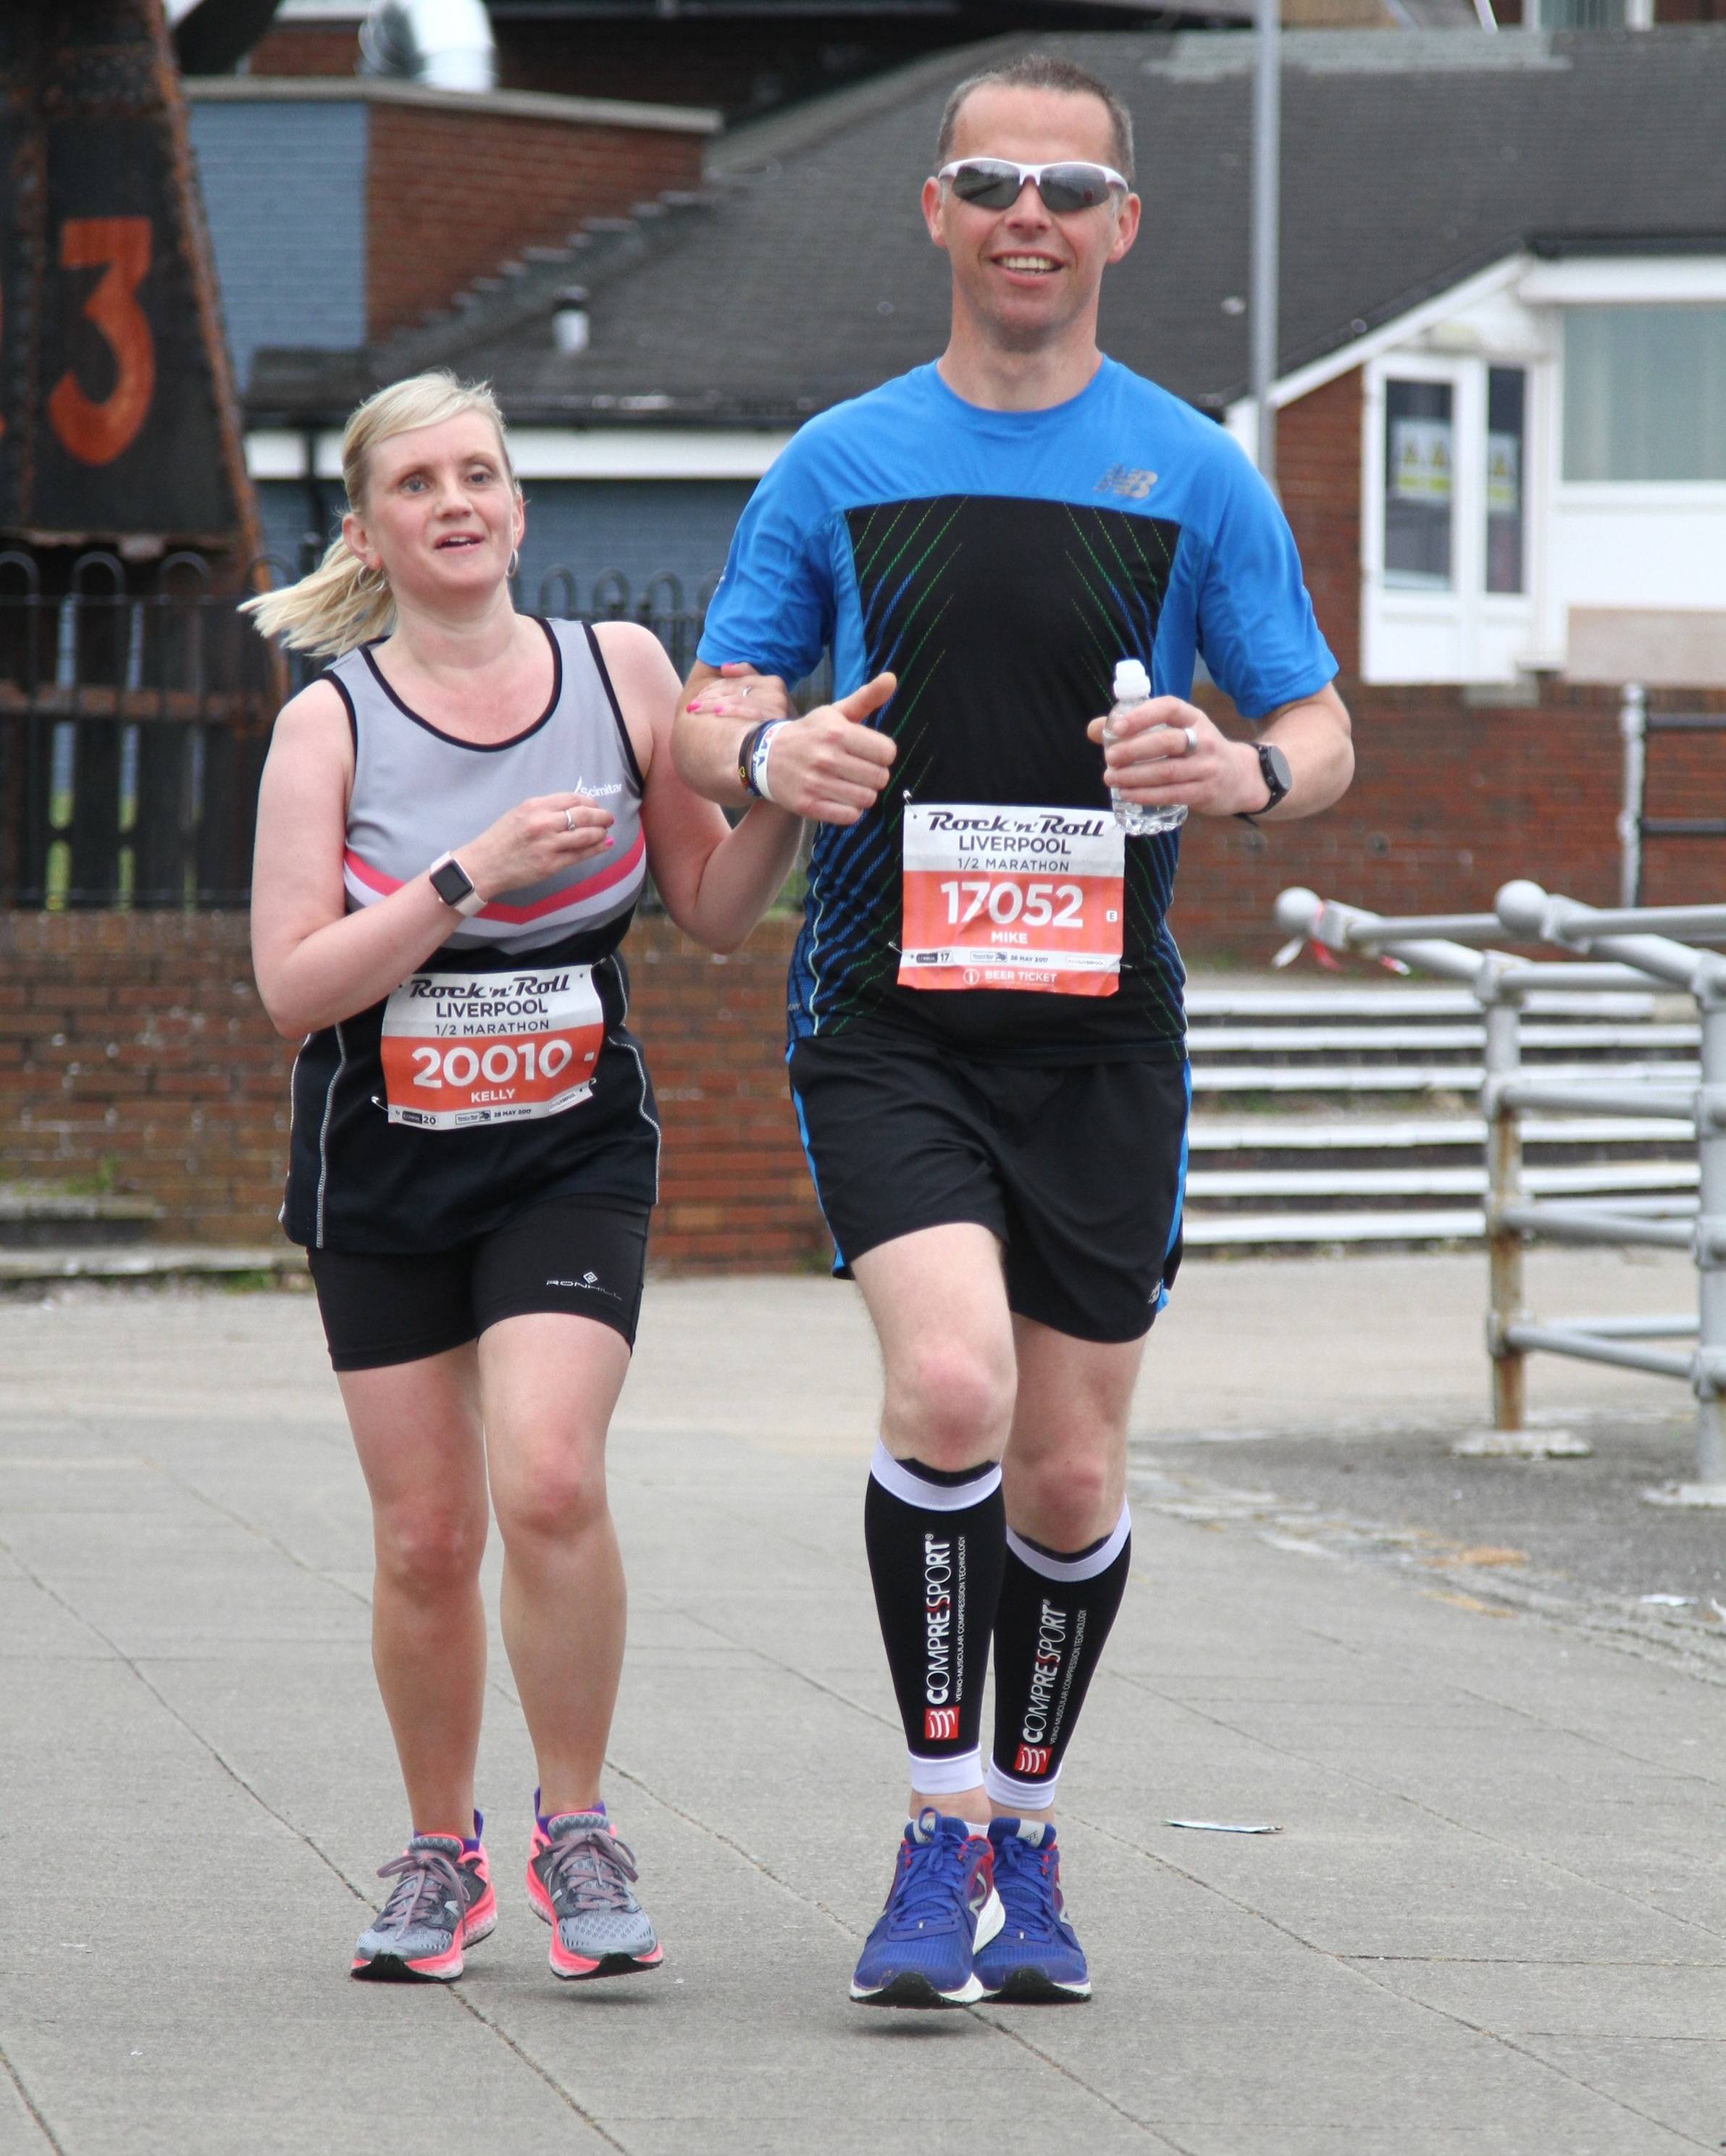 Kelly and guide Mike running the Liverpool Rock n Roll Half Marathon